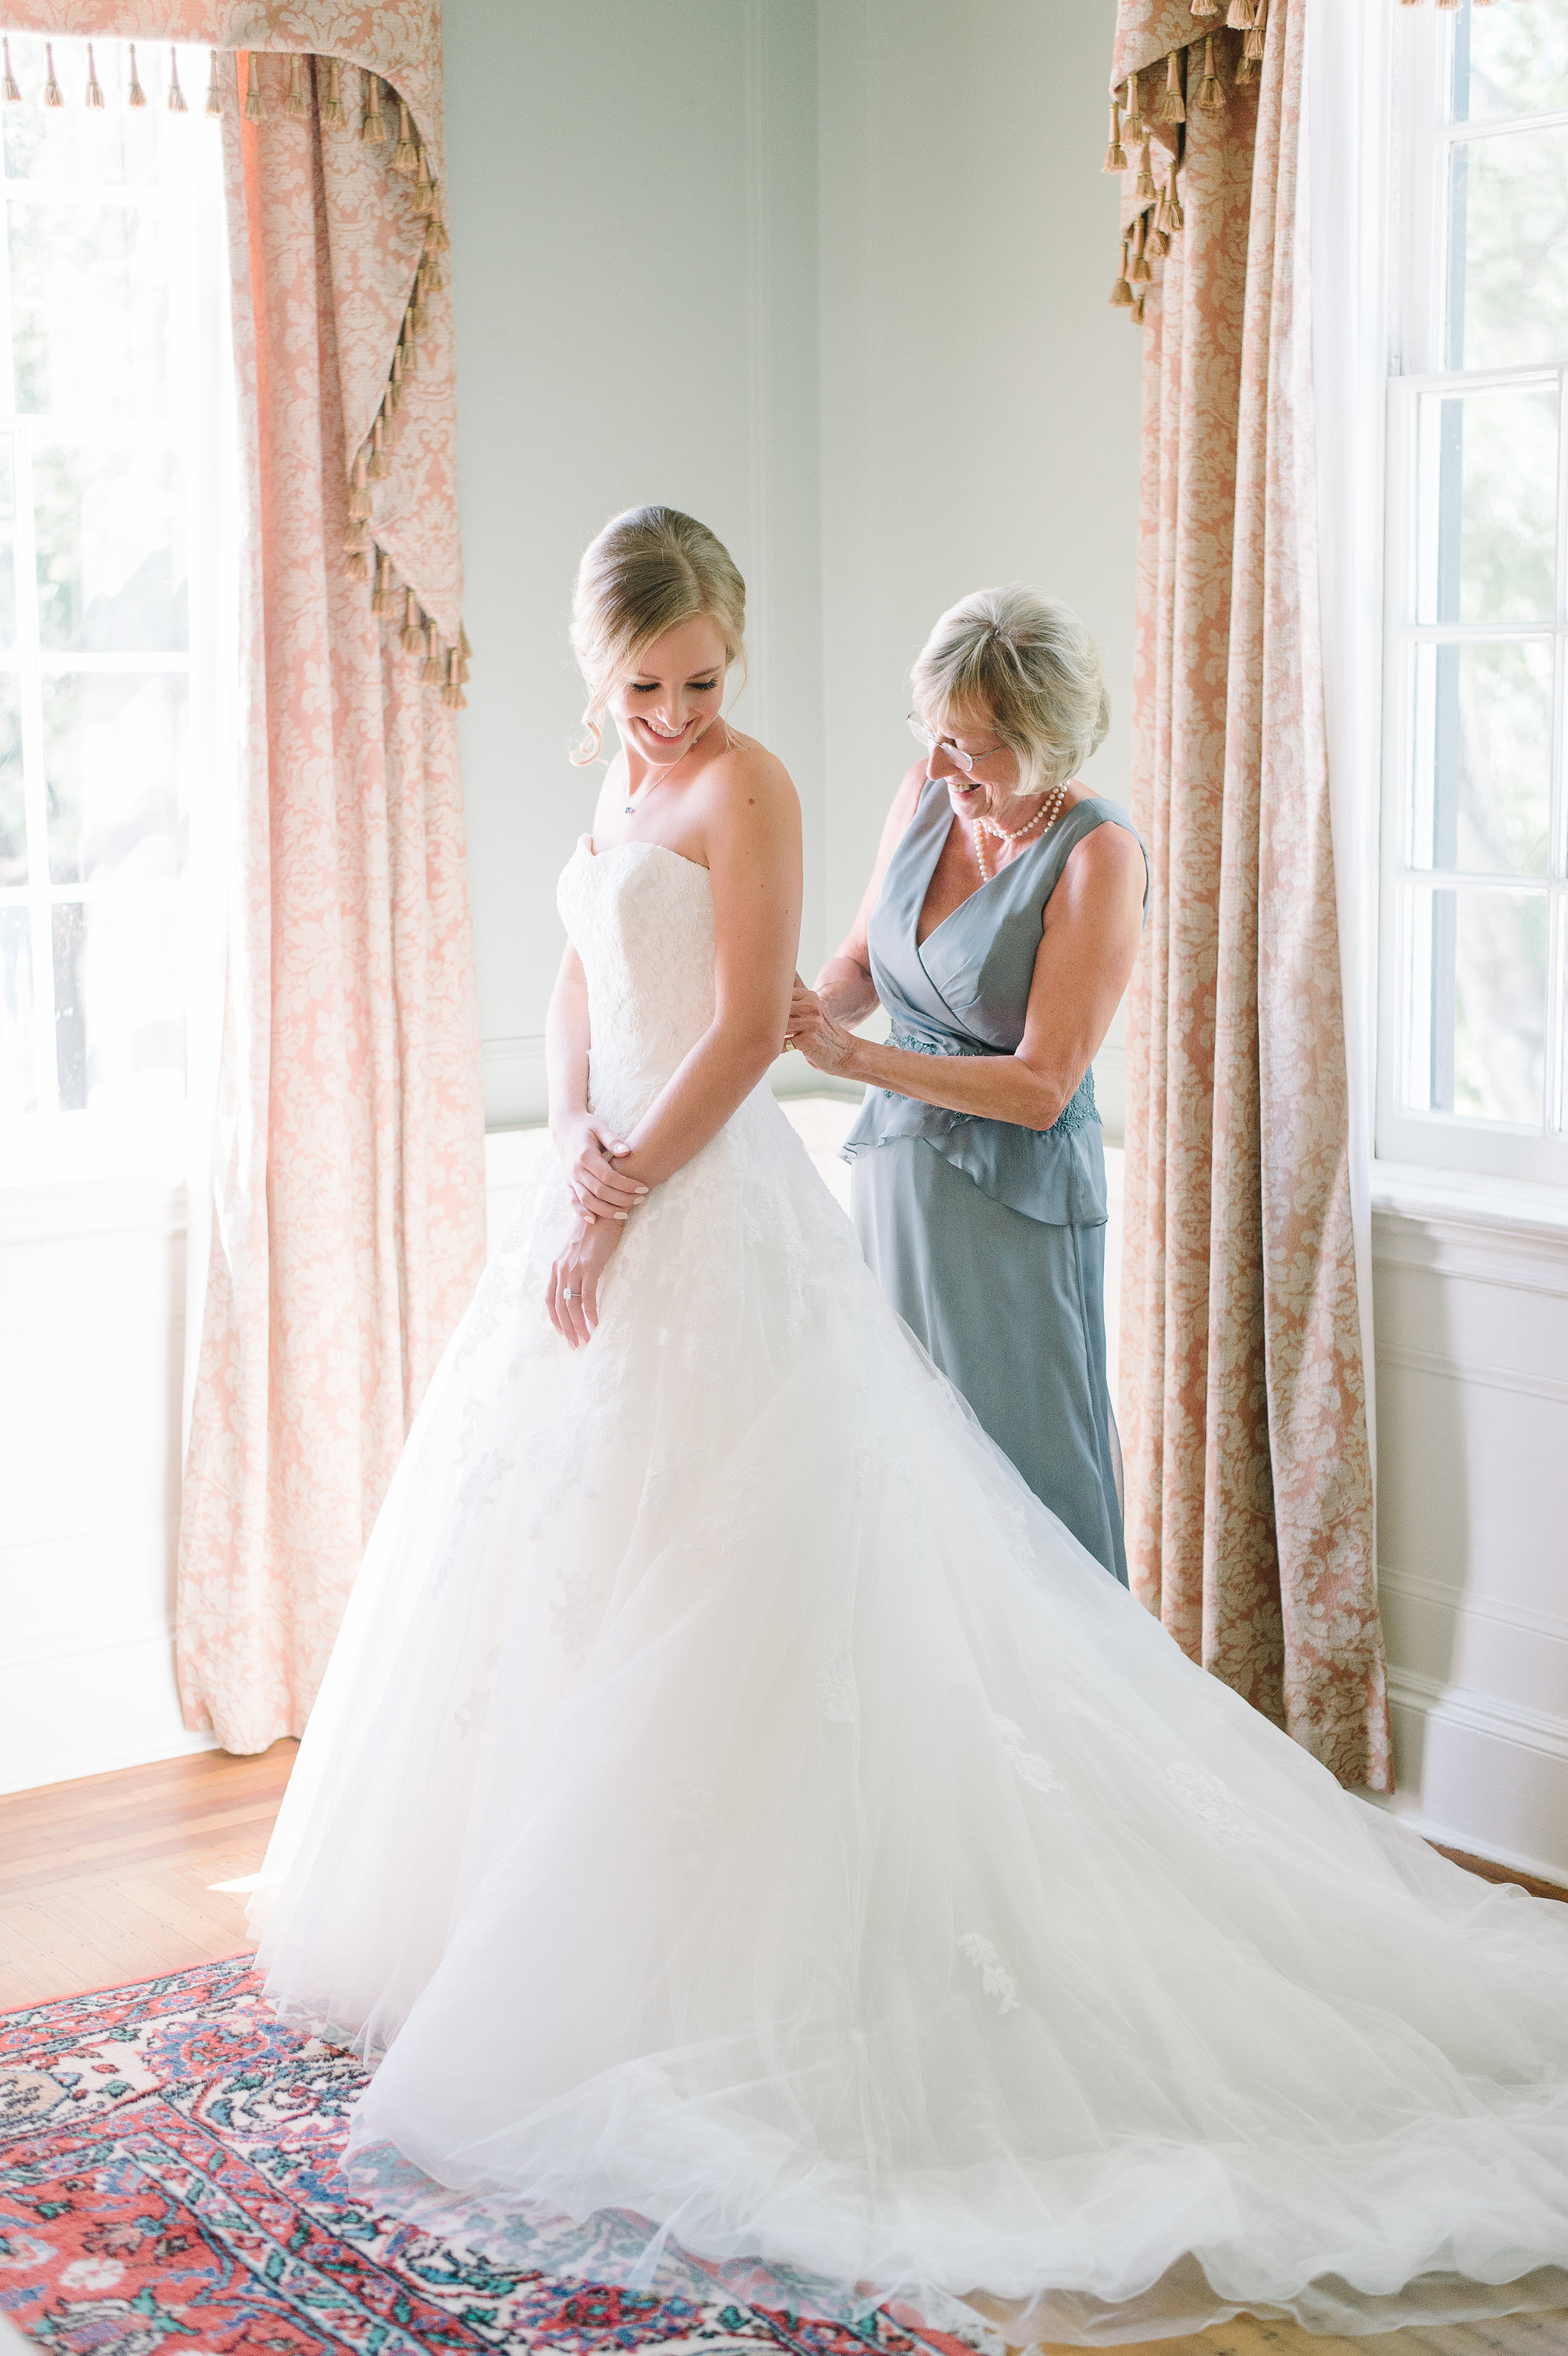 Abby+Will-LowndesGrovePlantationWedding-131.jpg